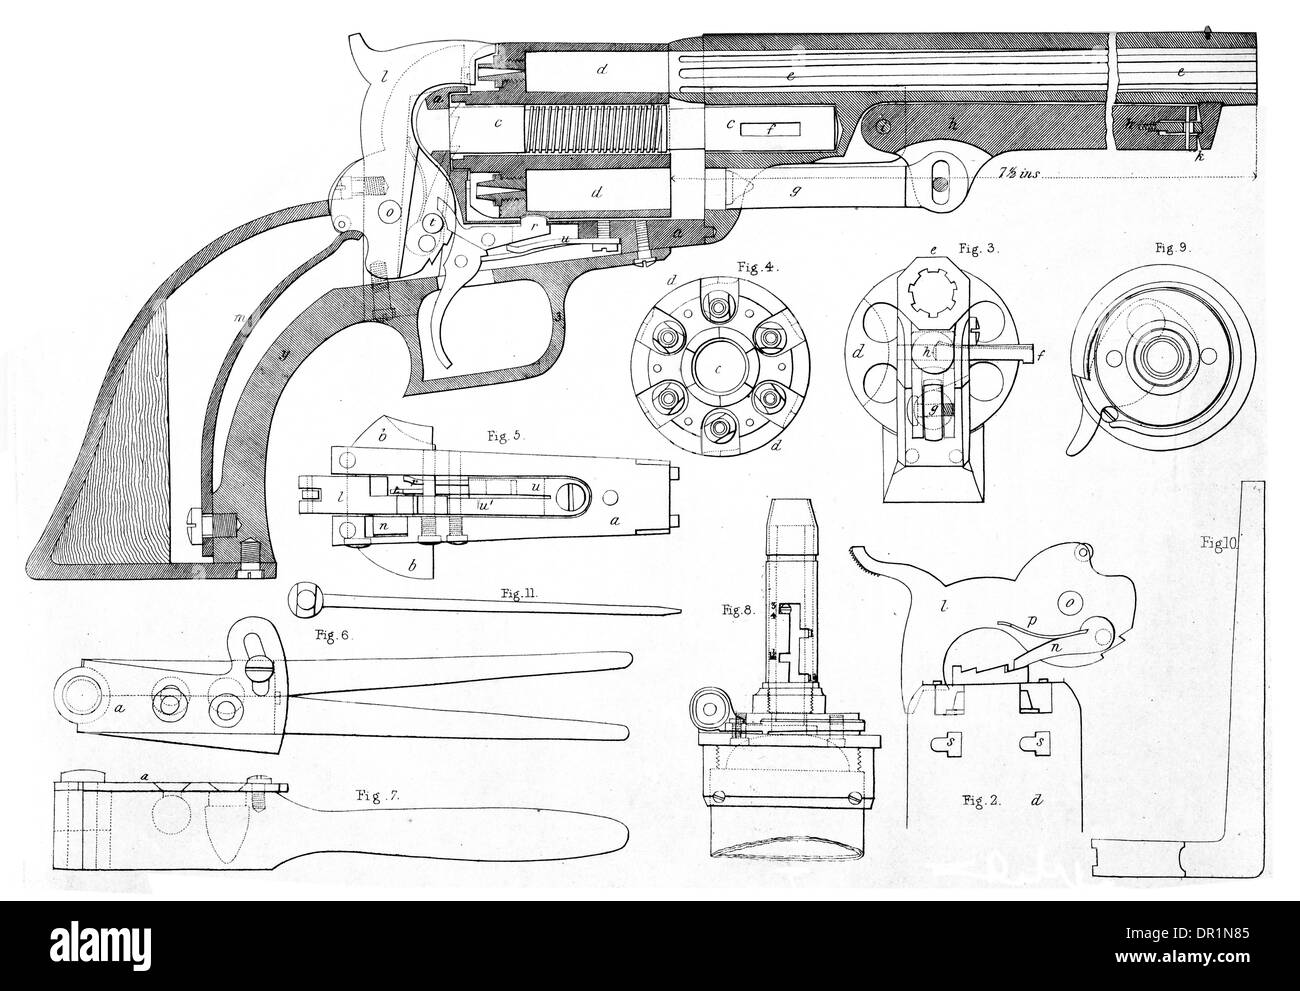 Colts patent repeating pistol in cross section showing all parts colts patent repeating pistol in cross section showing all parts circa 1889 pooptronica